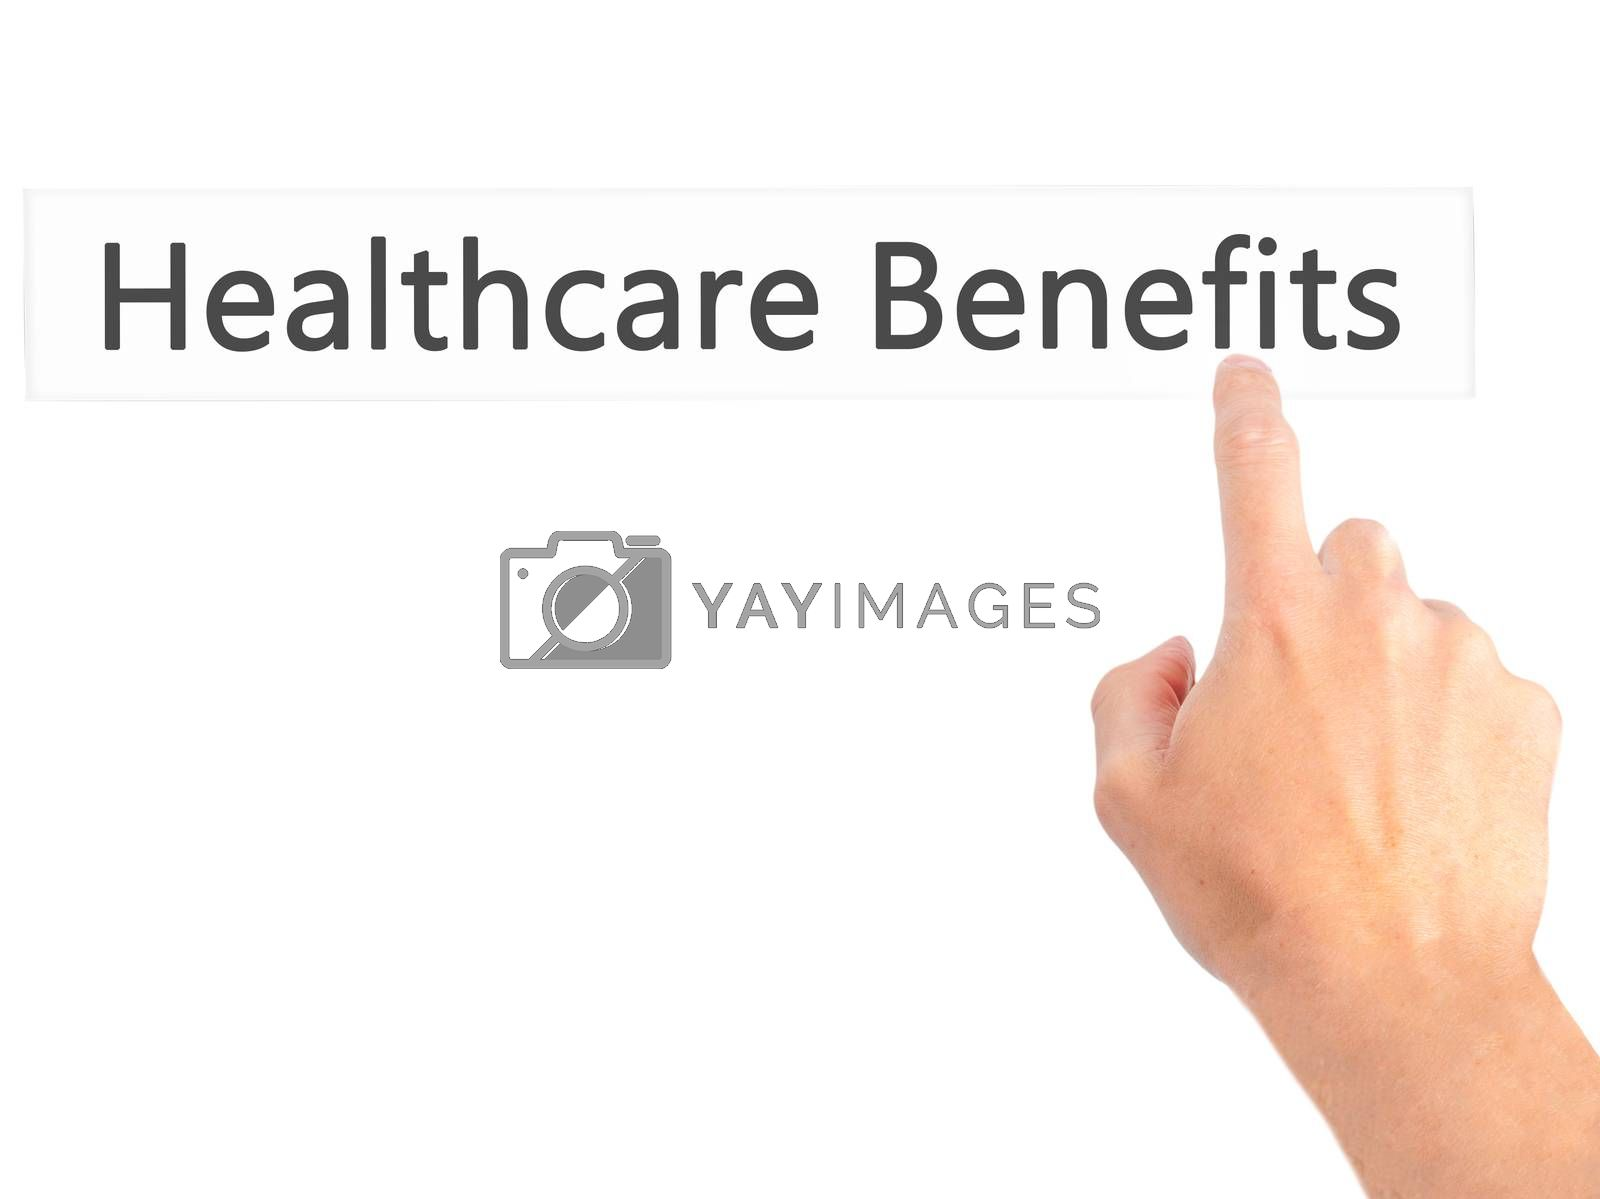 Healthcare Benefits - Hand pressing a button on blurred backgrou by netsay.net